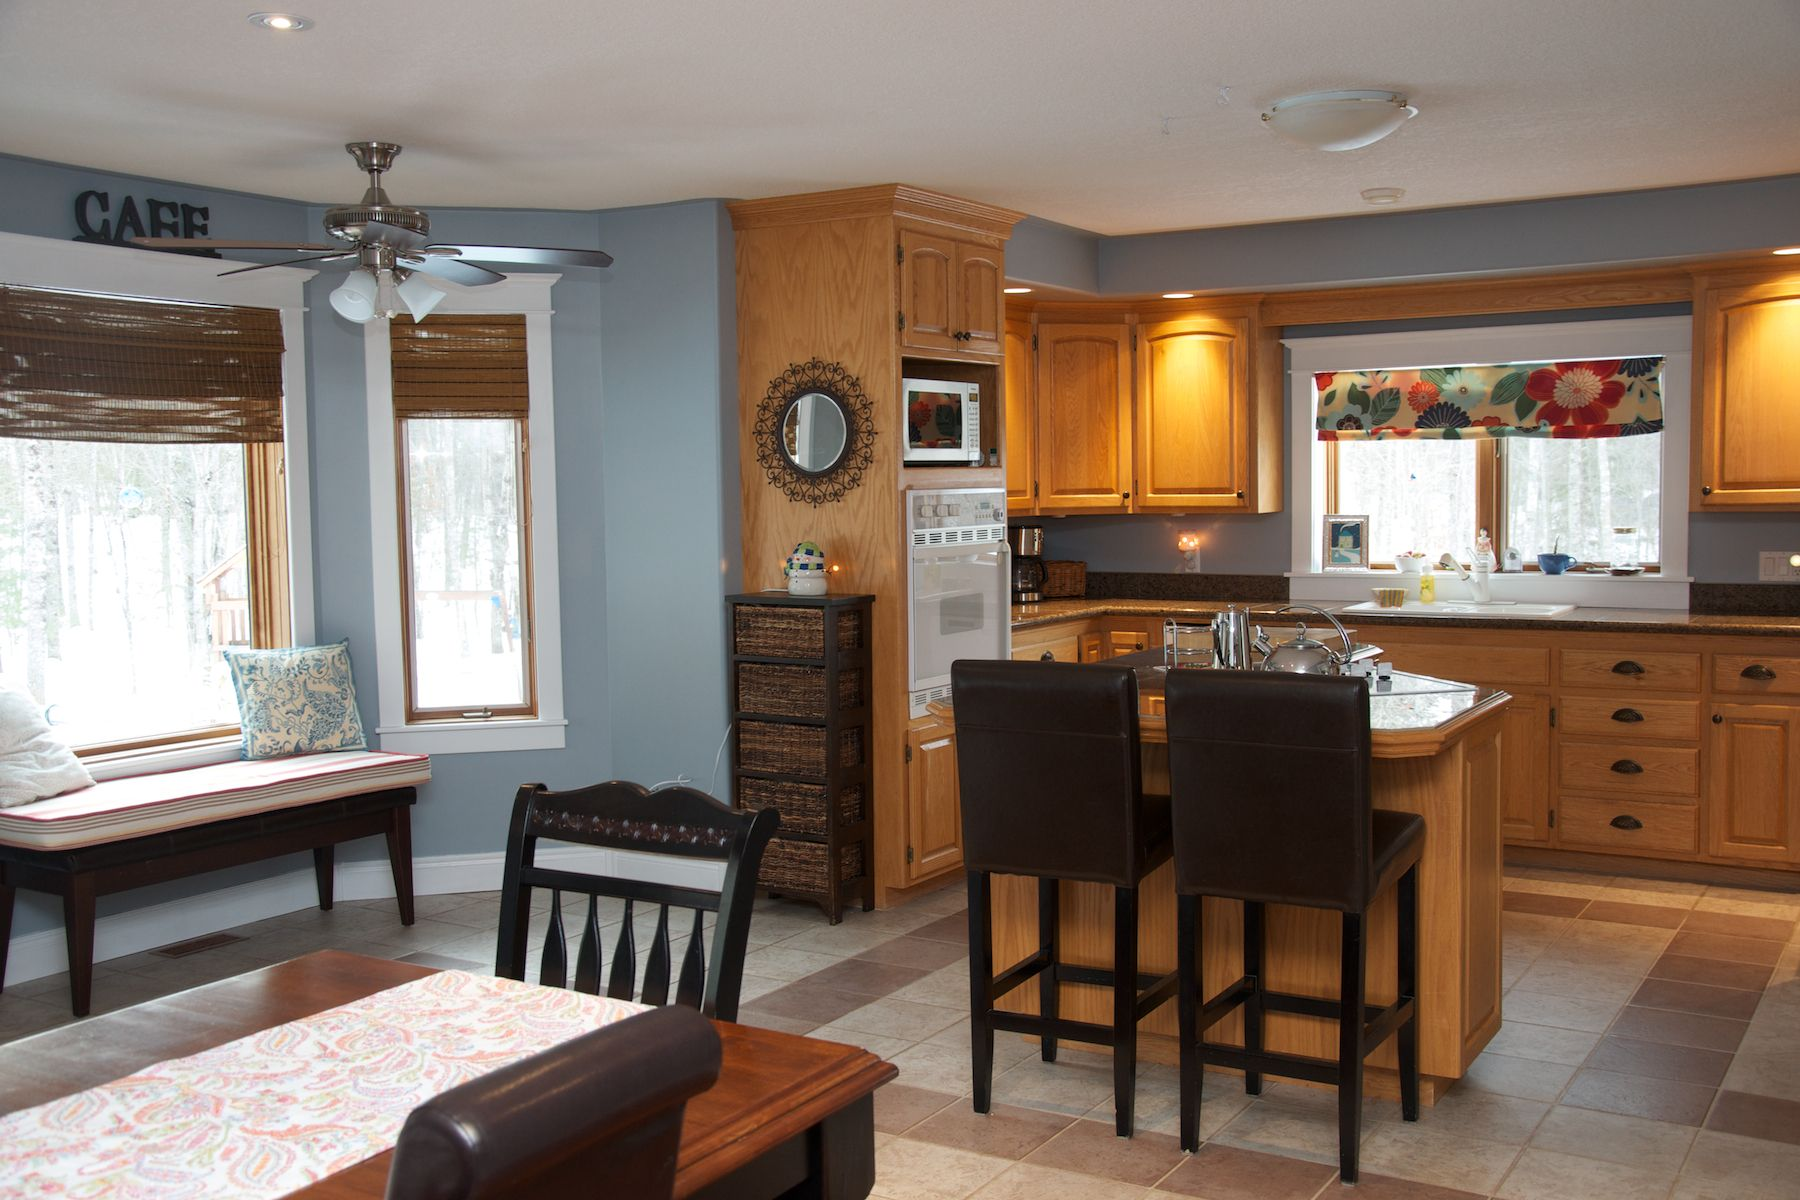 oak kitchen with blue grey wall color kitchen reno is not on best colors to paint walls id=89136